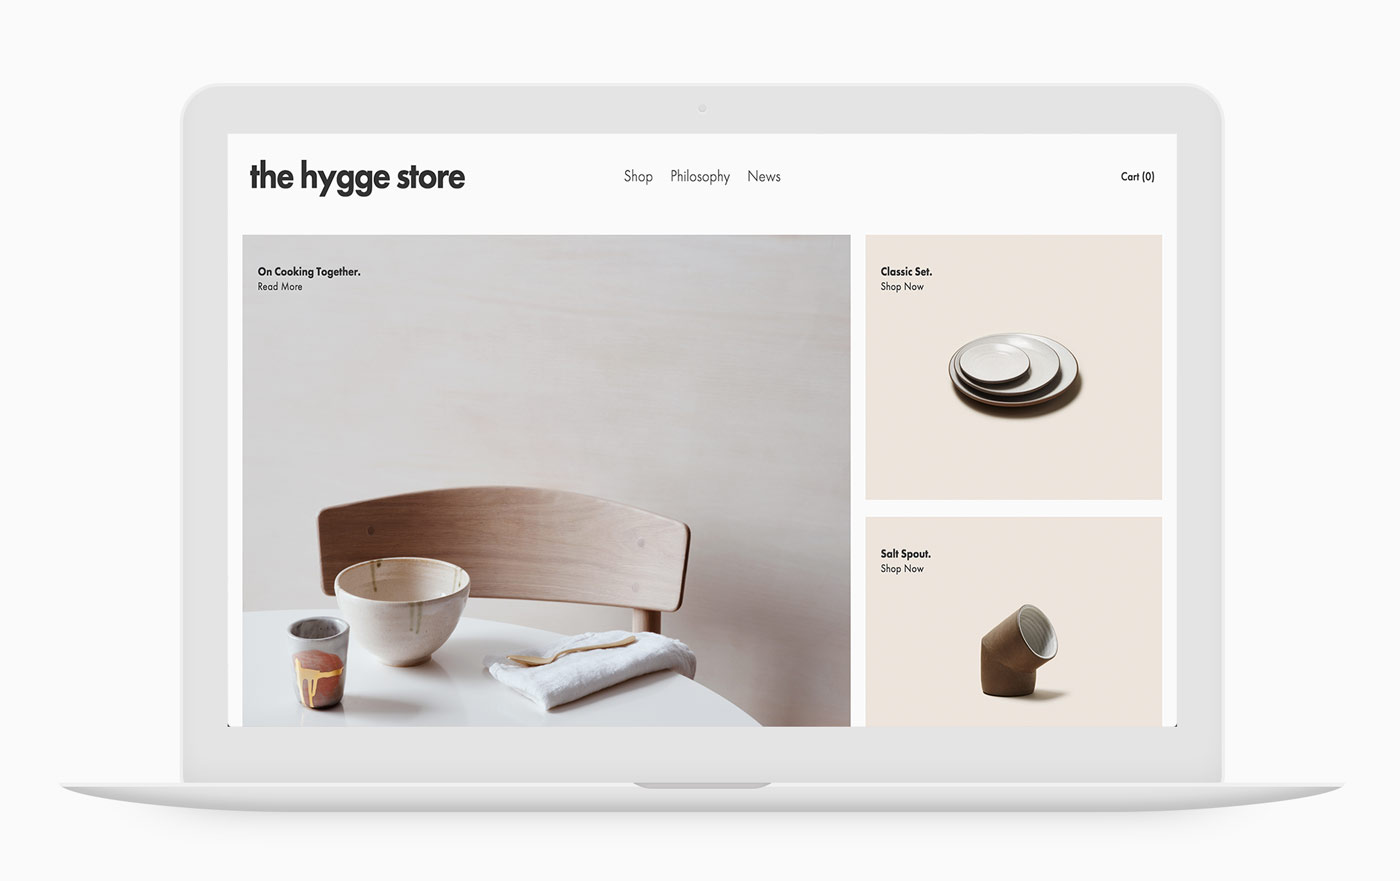 DemainStudio-macbook-hygge-store.jpg